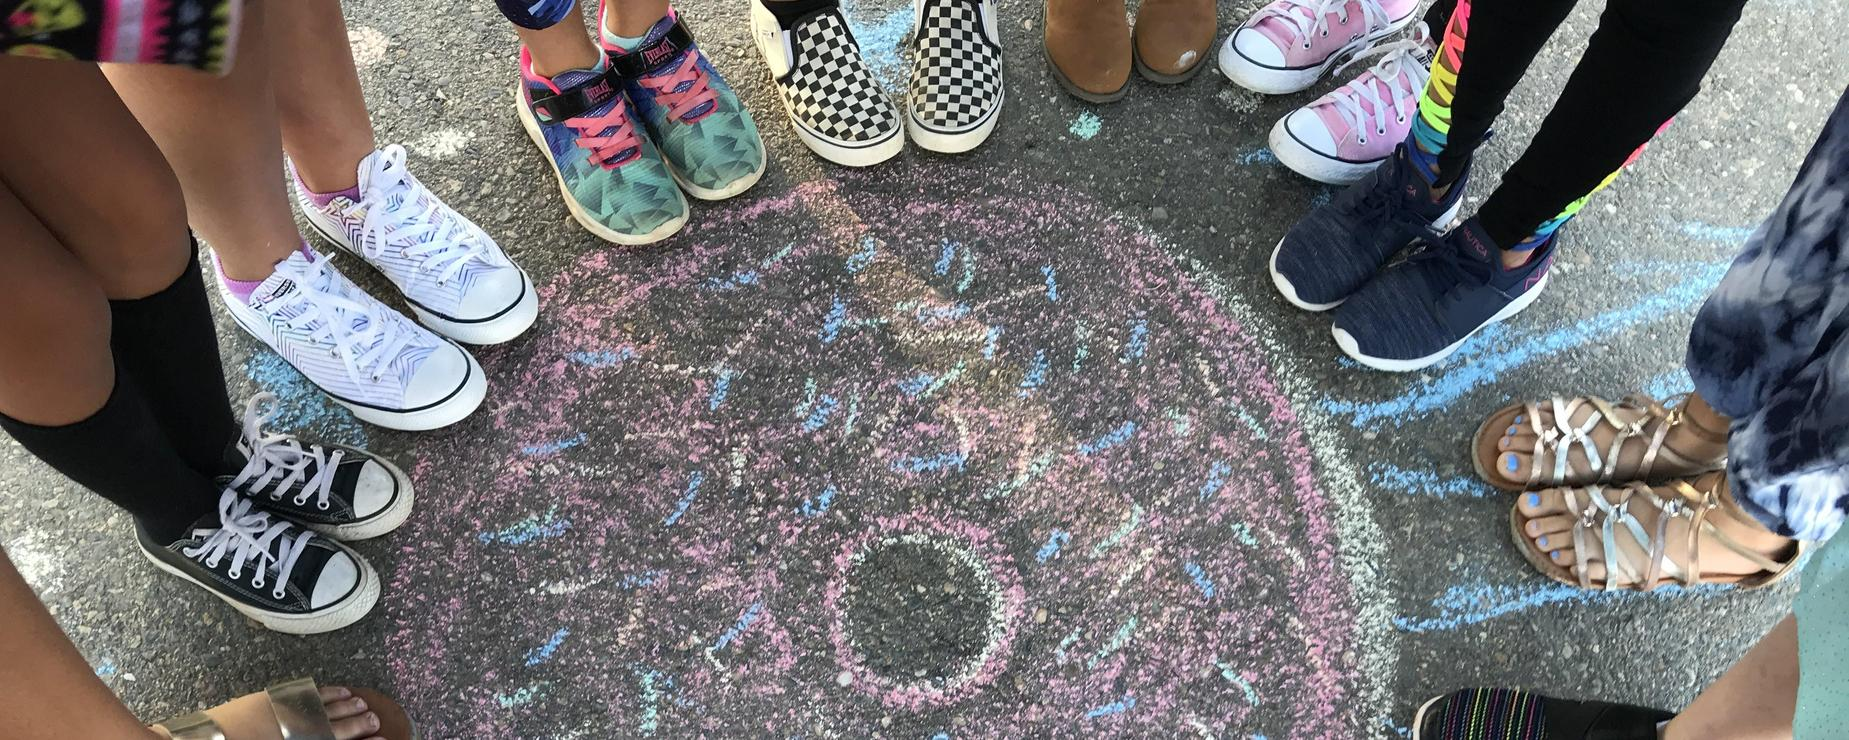 Donut sidewalk art and kids' feet